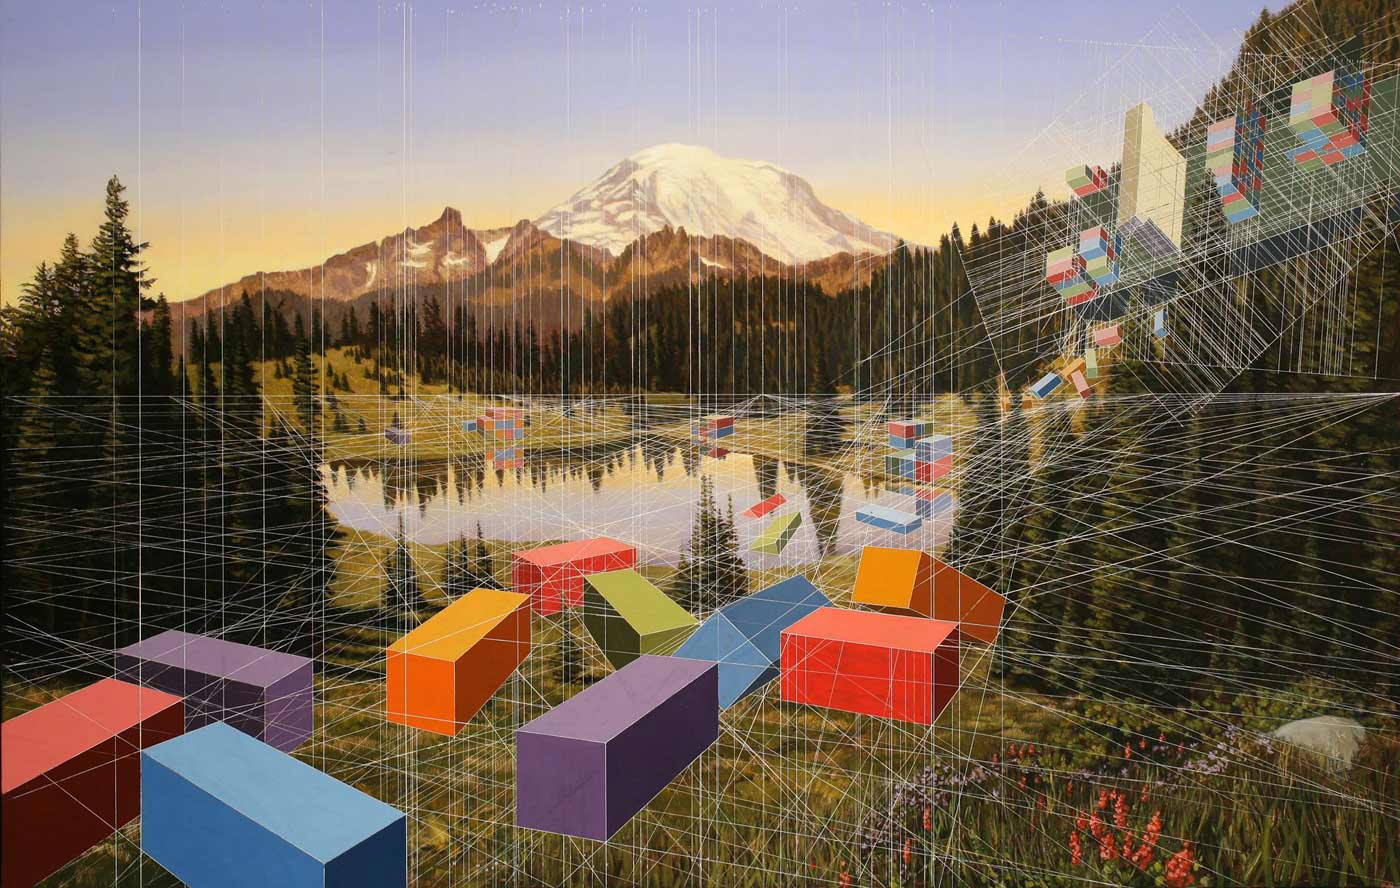 Mary-Iverson-Shipping-Containers-4